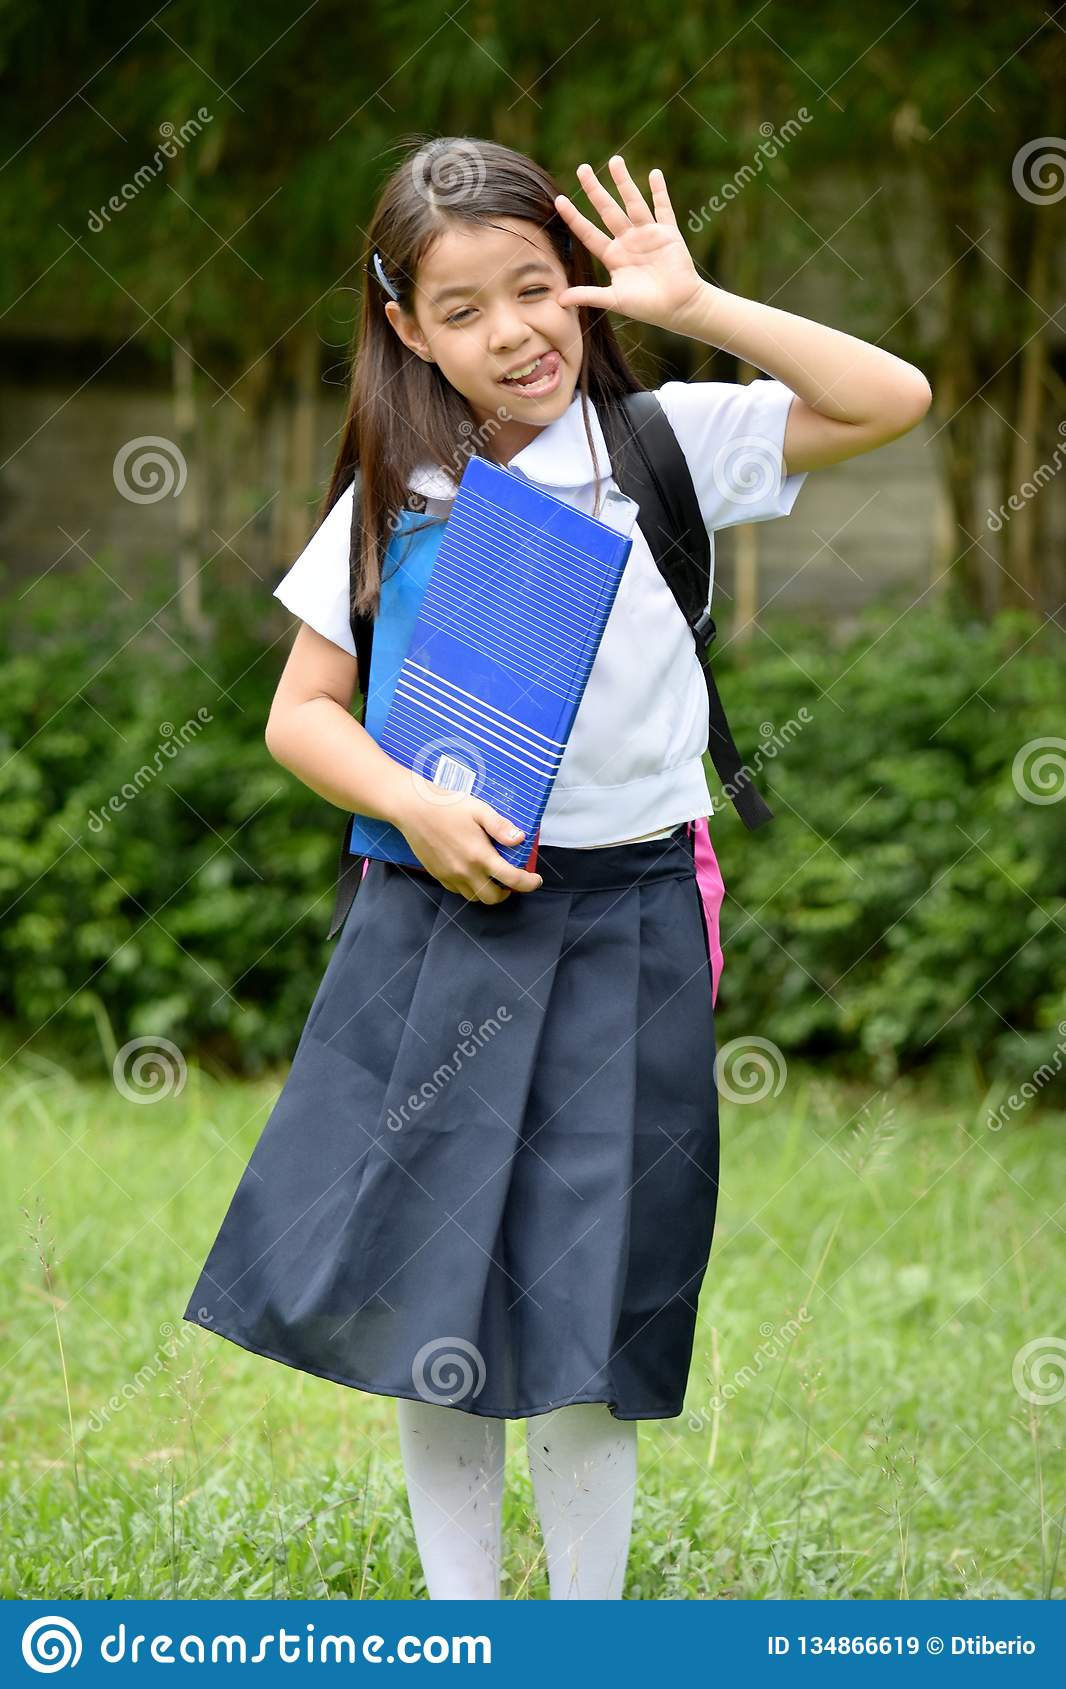 Young Girl Student Making Funny Faces Wearing School Uniform